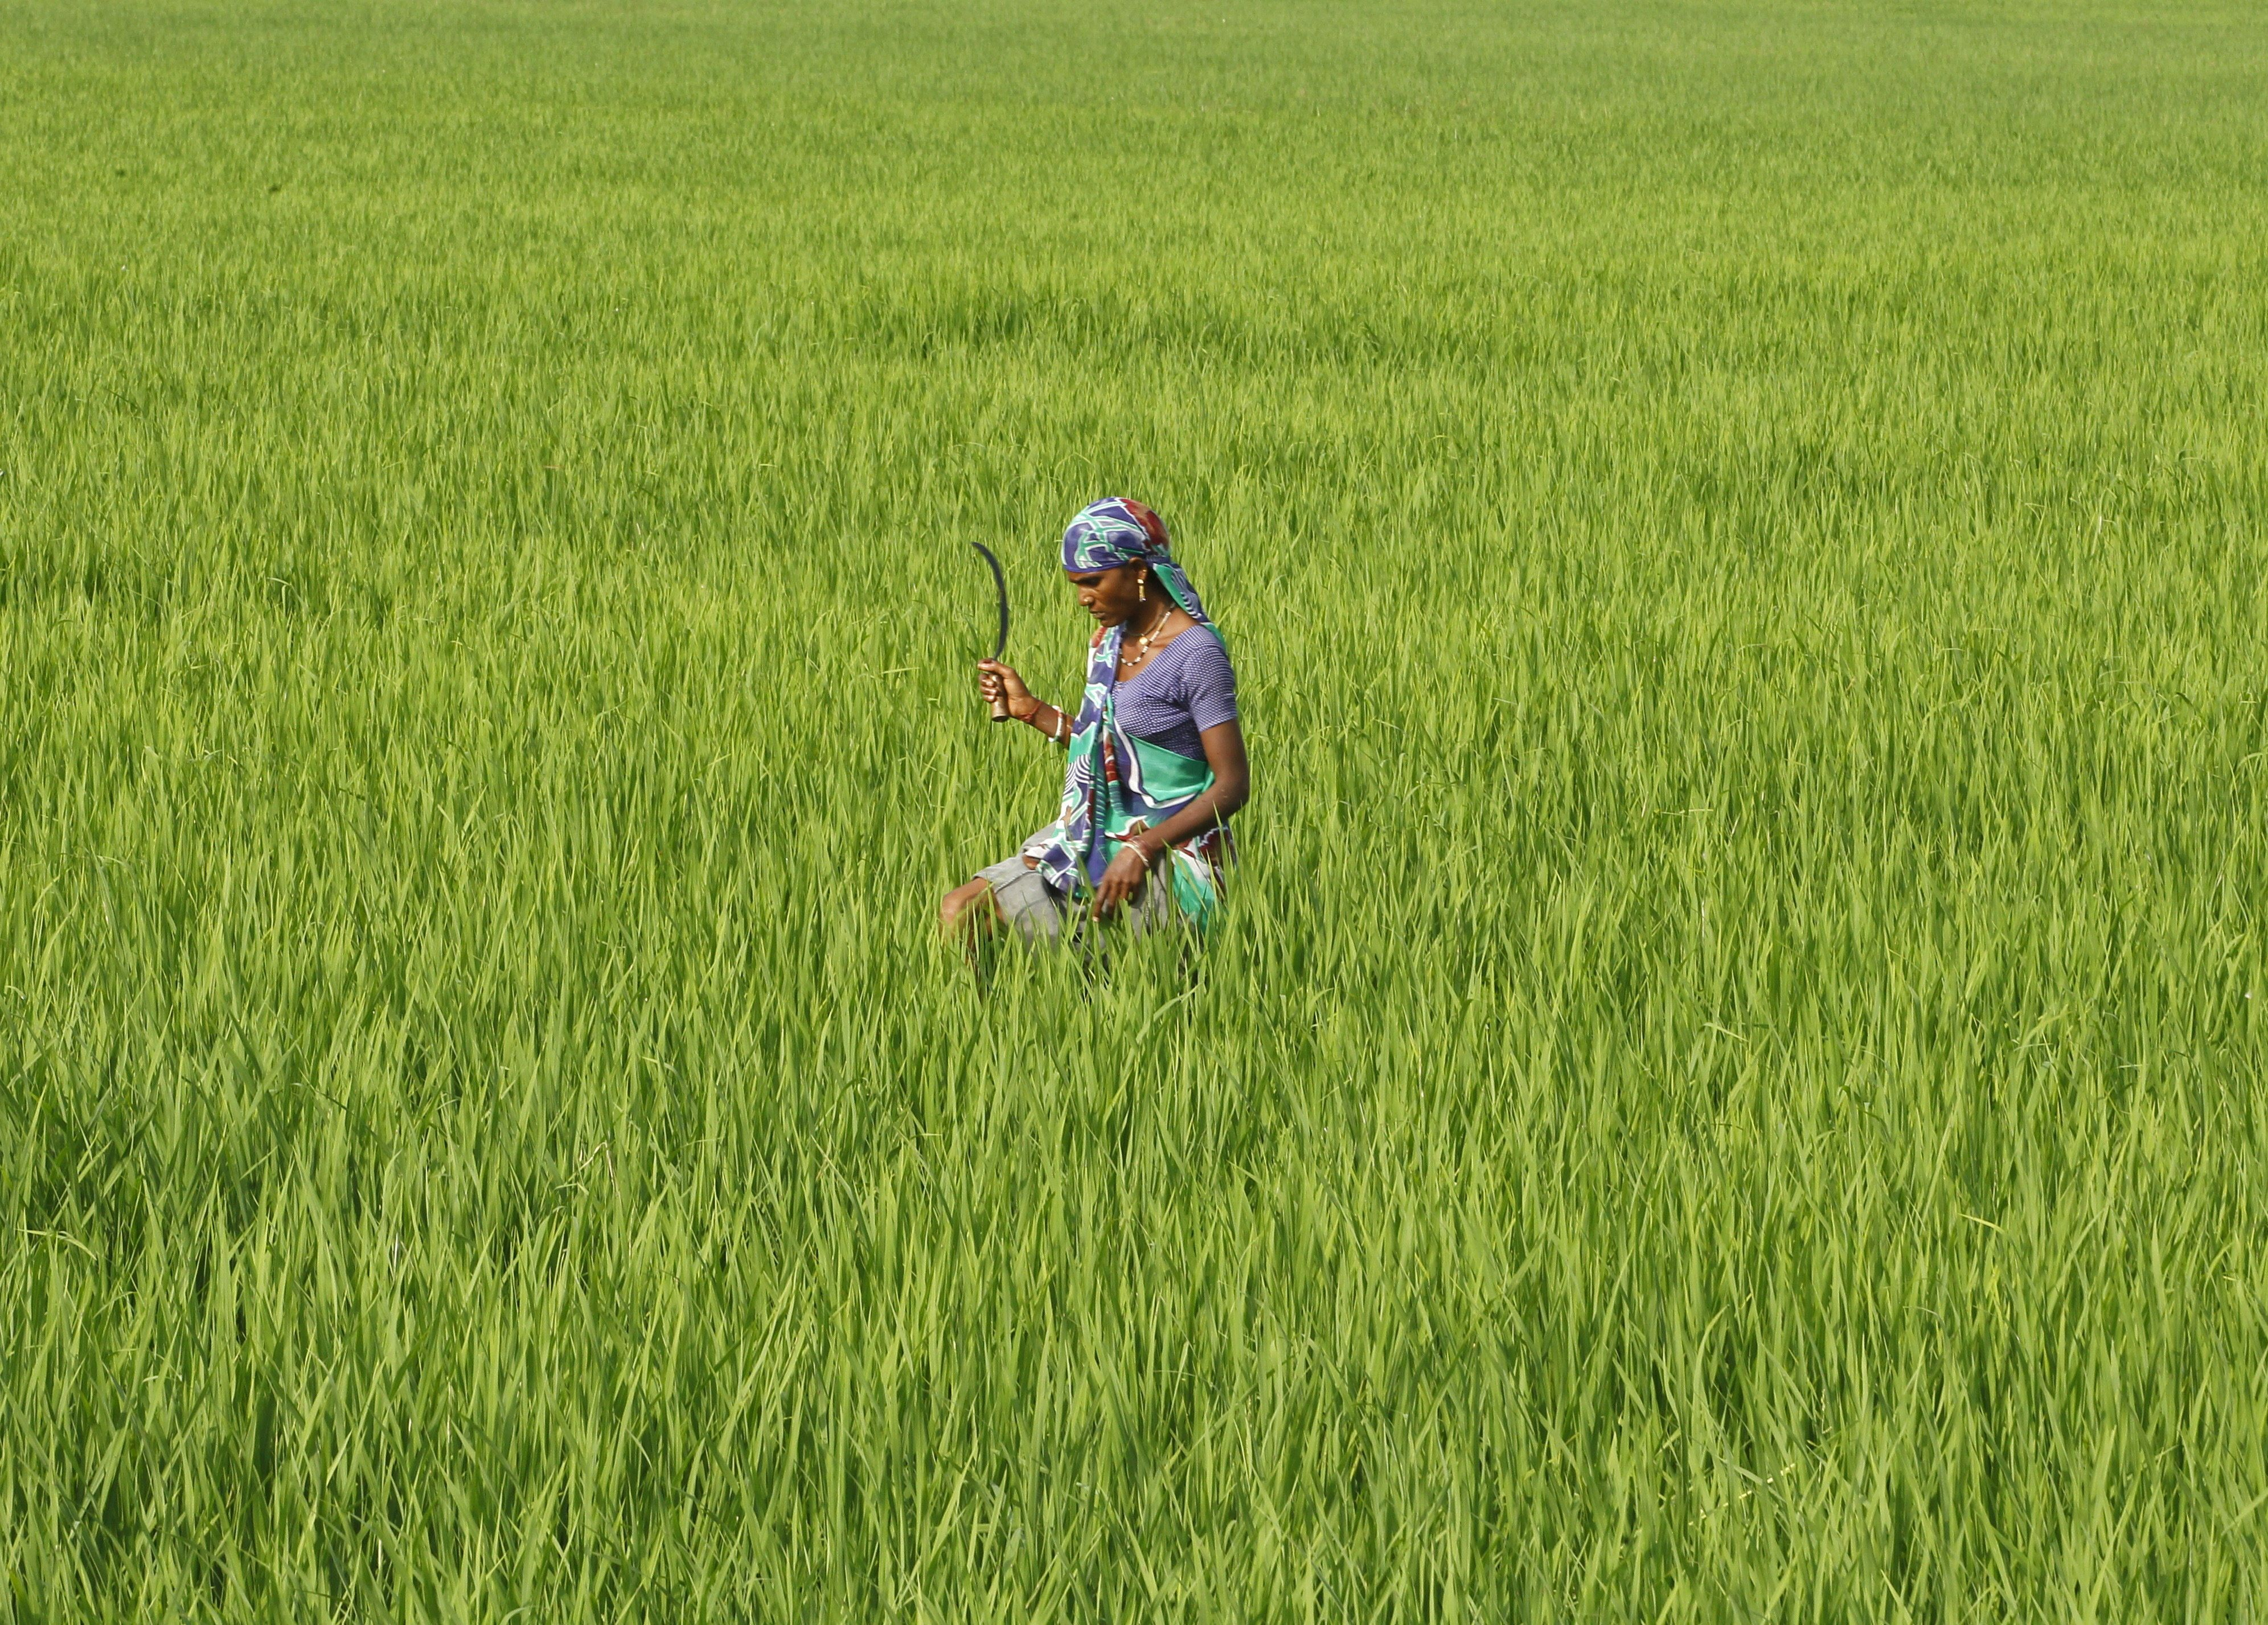 A farmworker in a rice paddy field in Ahmedabed, India. An unconventional method for growing rice has been found to increase